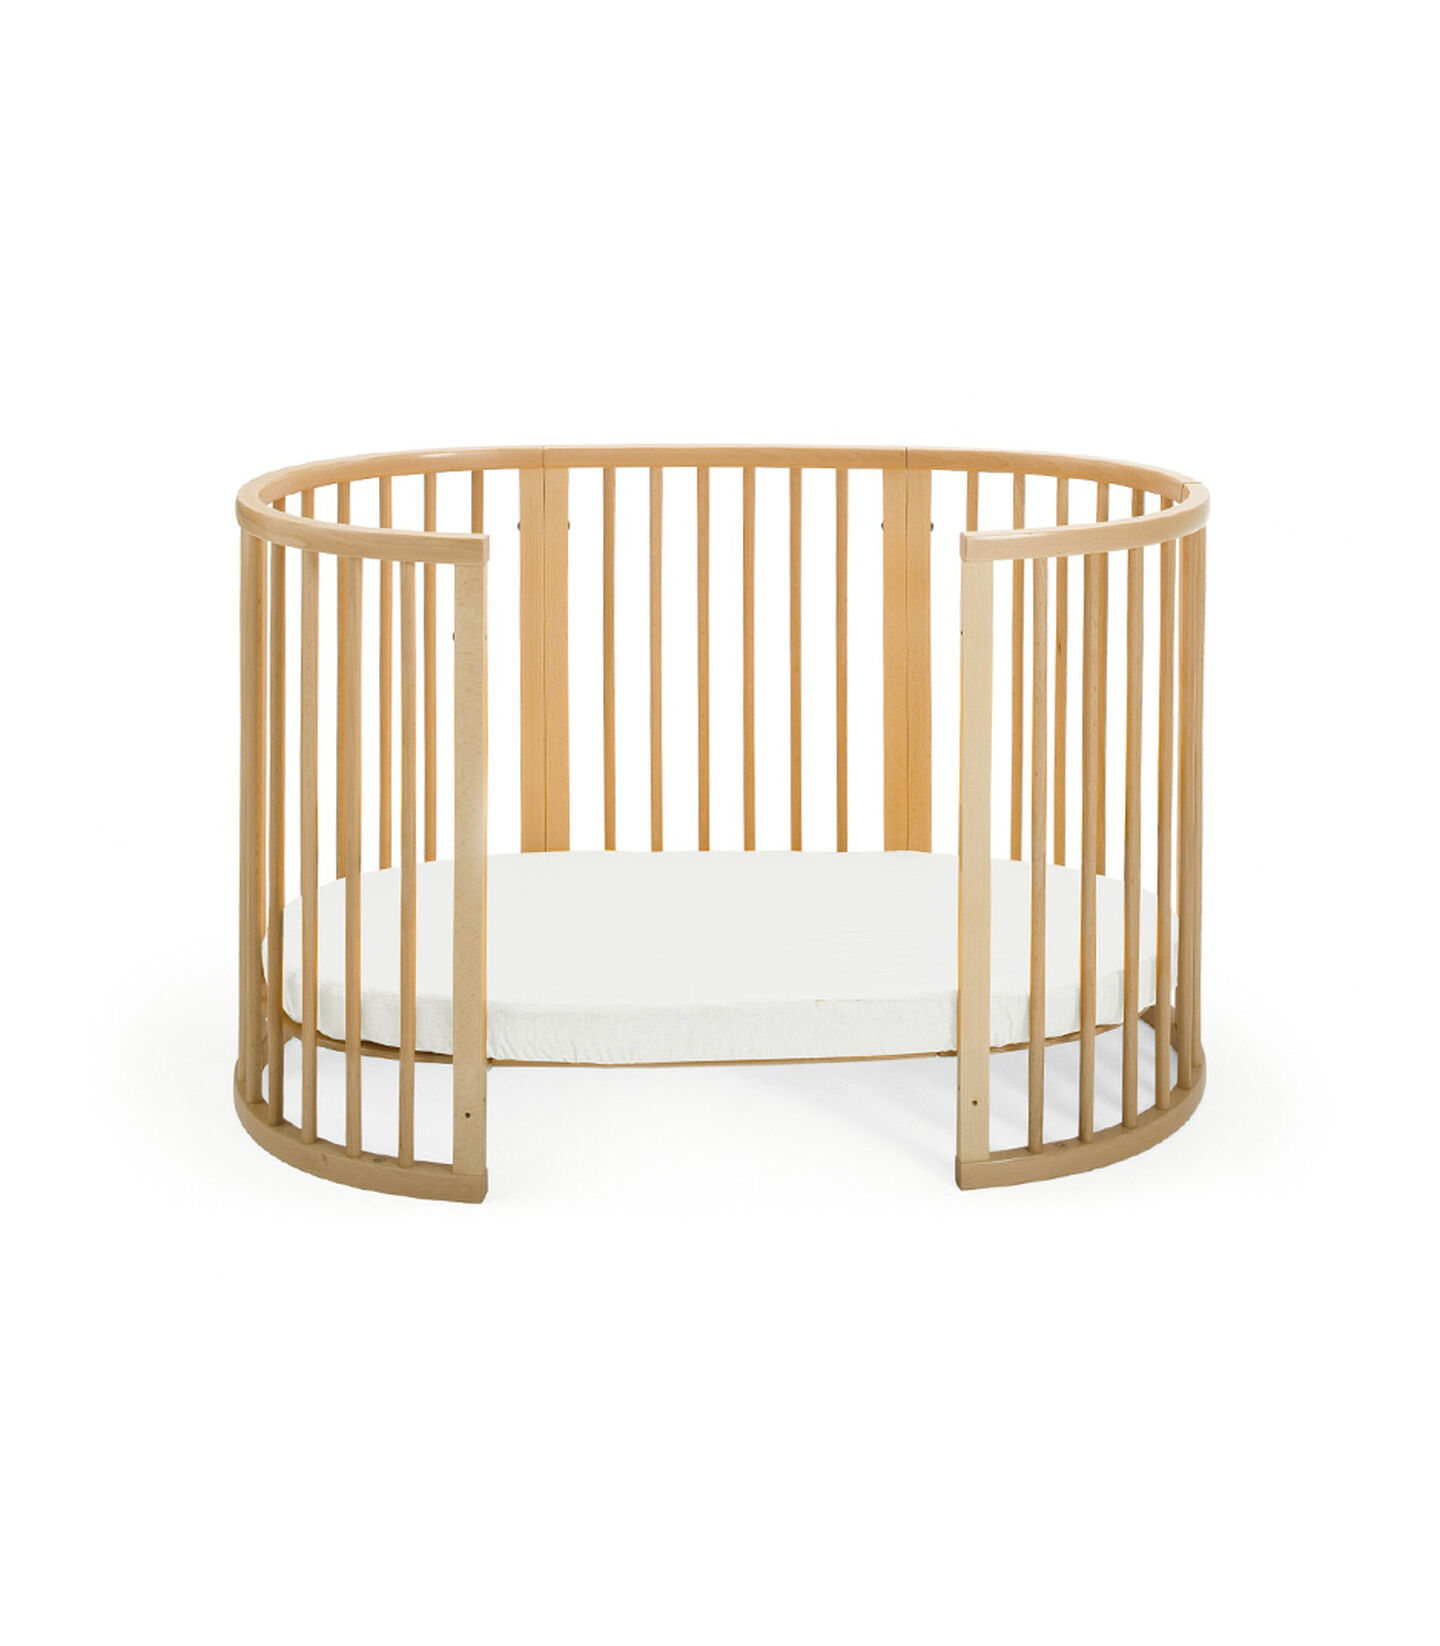 stokke tremmeseng Stokke® Sleepi™ Crib/Bed Natural stokke tremmeseng